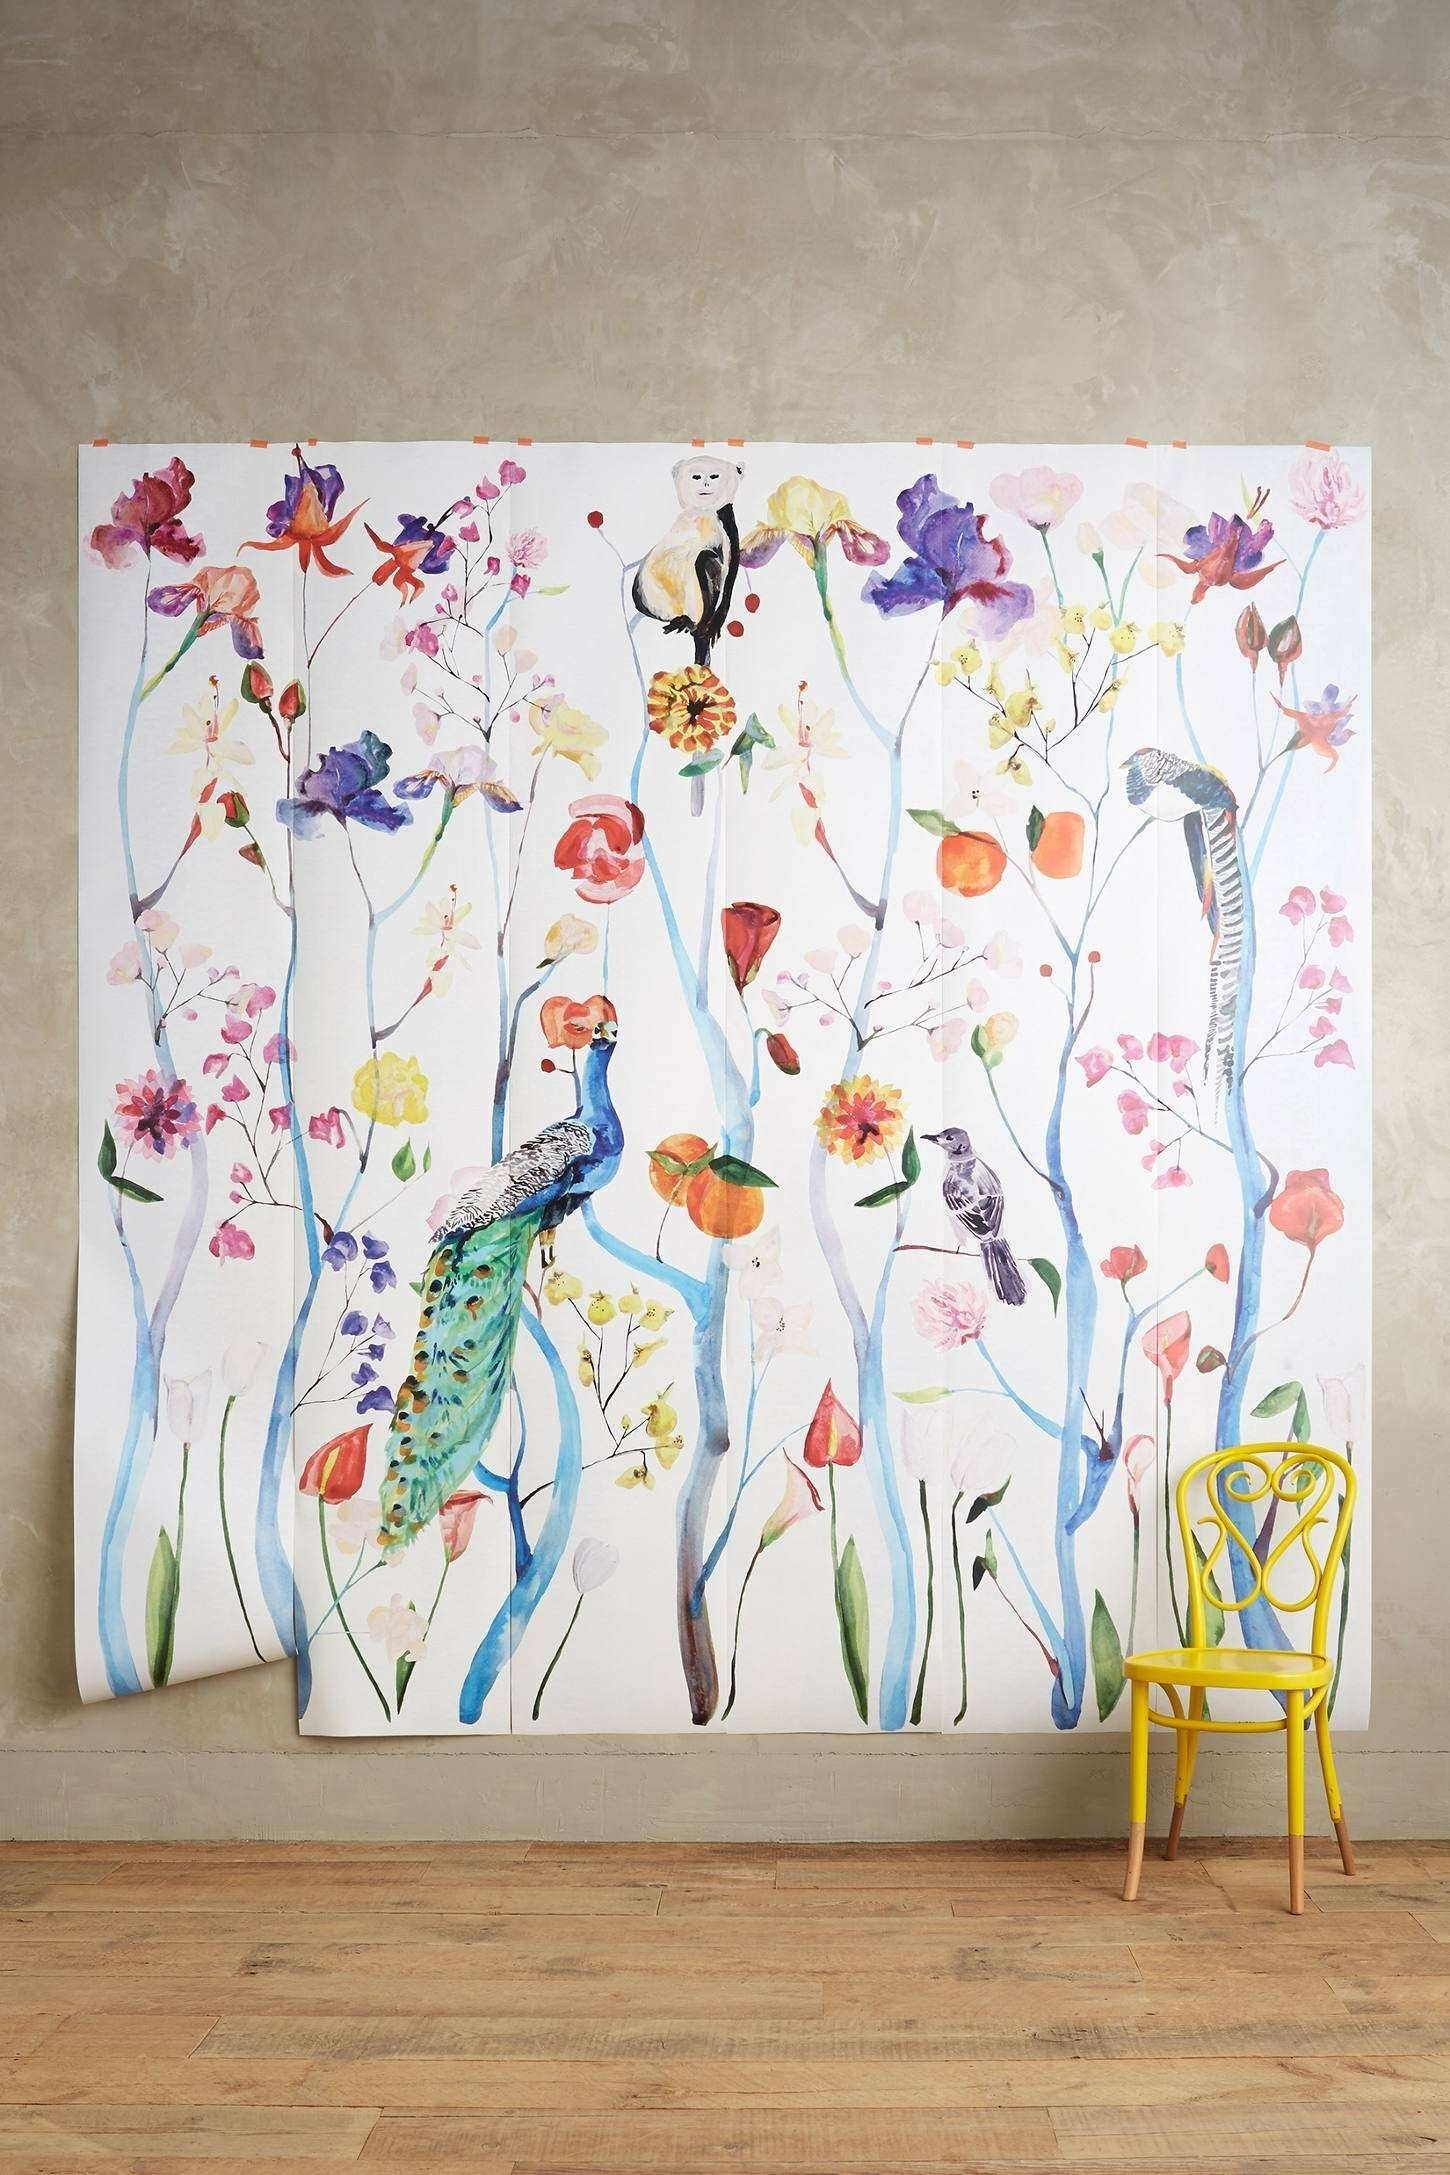 Anthropologie Wall Art Awesome Garden Chinoiserie Mural | Wall Art Ideas pertaining to Anthropologie Wall Art (Image 2 of 20)